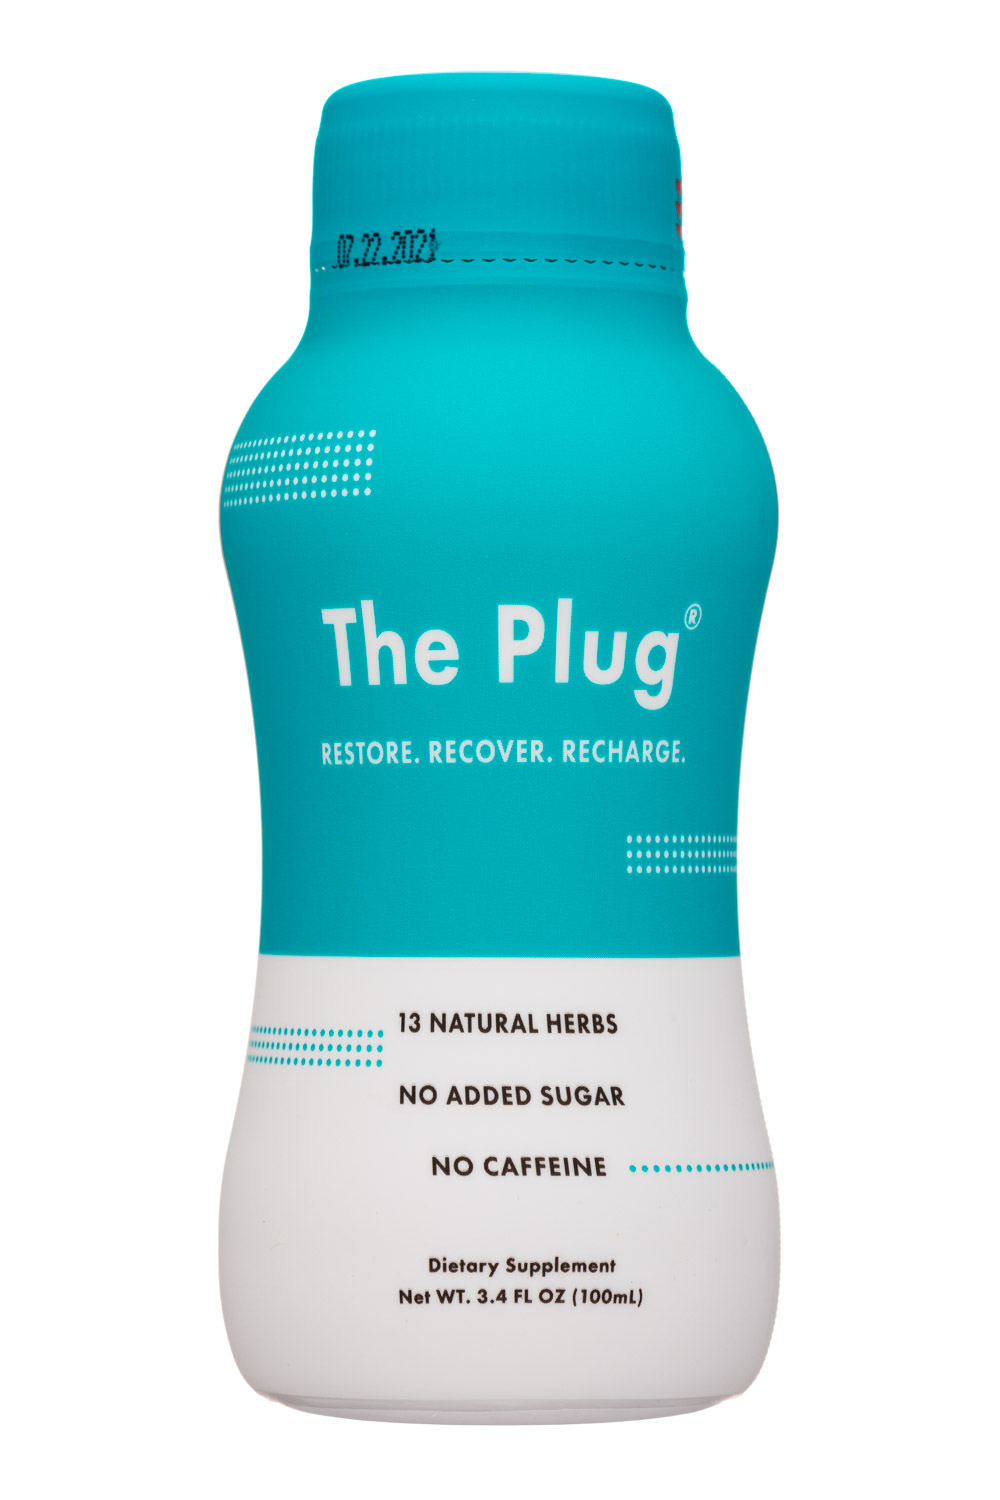 The Plug - Restore. Recover. Recharge